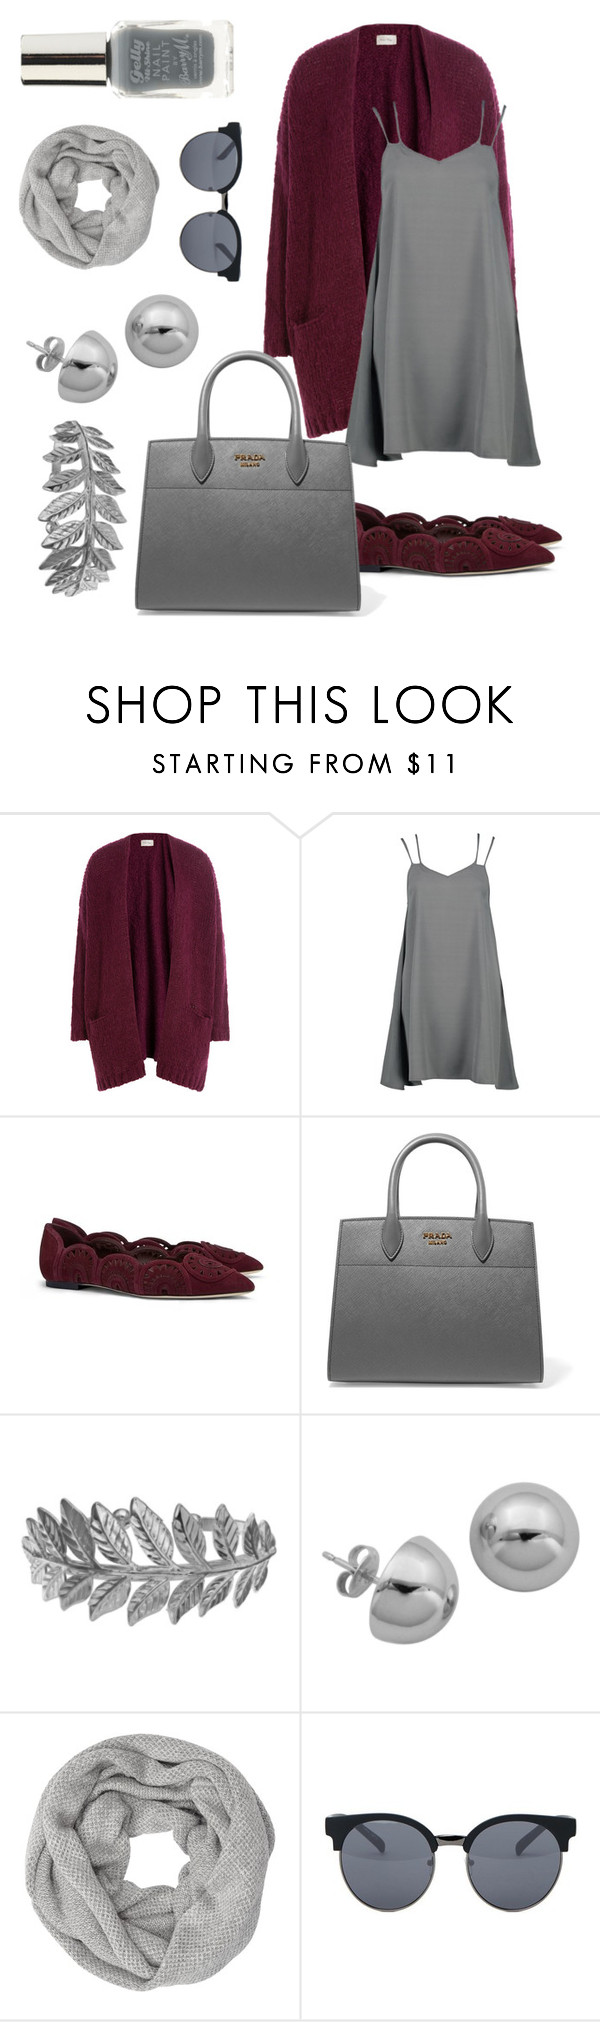 """""""All gray"""" by tissina ❤ liked on Polyvore featuring American Vintage, Boohoo, Tory Burch, Prada, Lord & Taylor, John Lewis, Quay and Lipsy"""